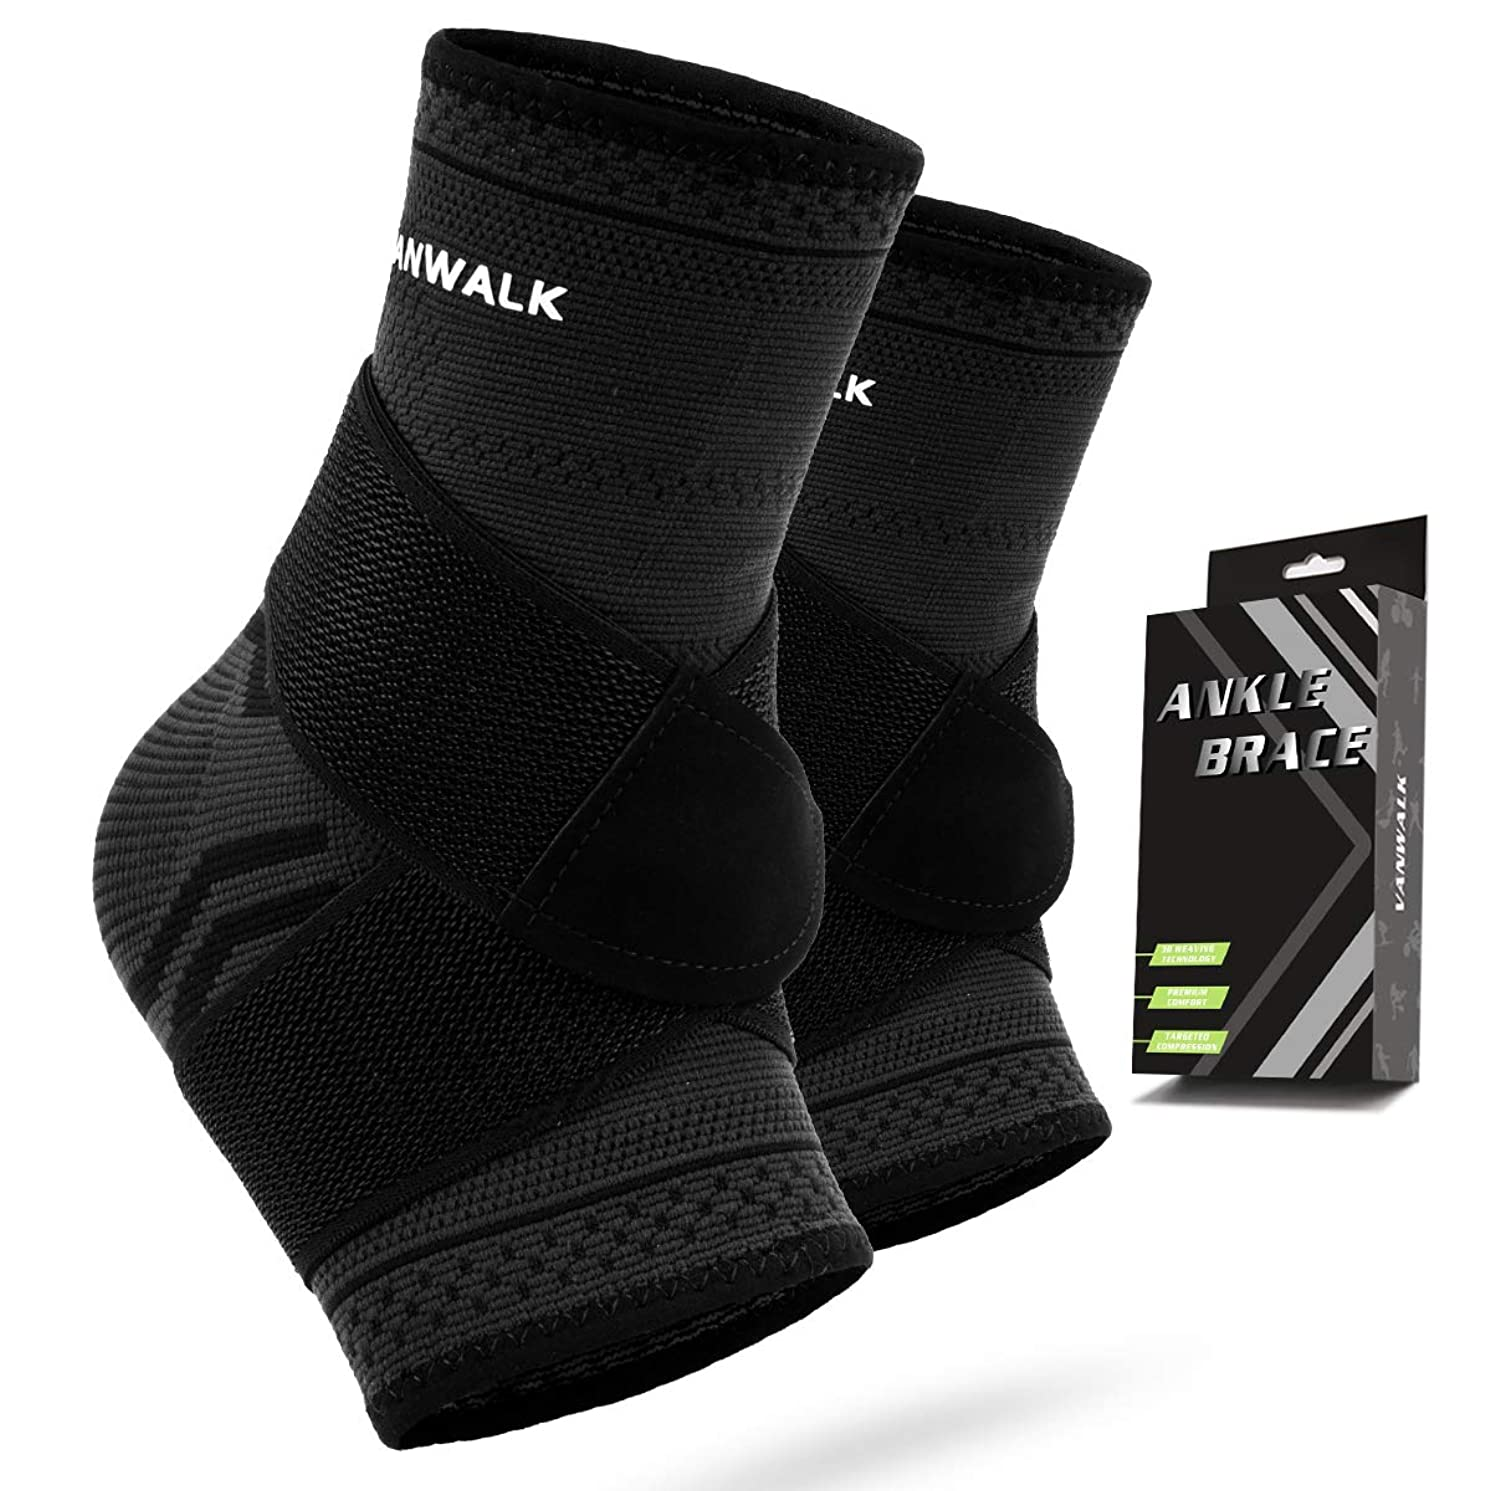 Ankle Brace Compression Support Sleeve - Ankle Compression Socks with Adjustable Strap - Breathable & Comfortable